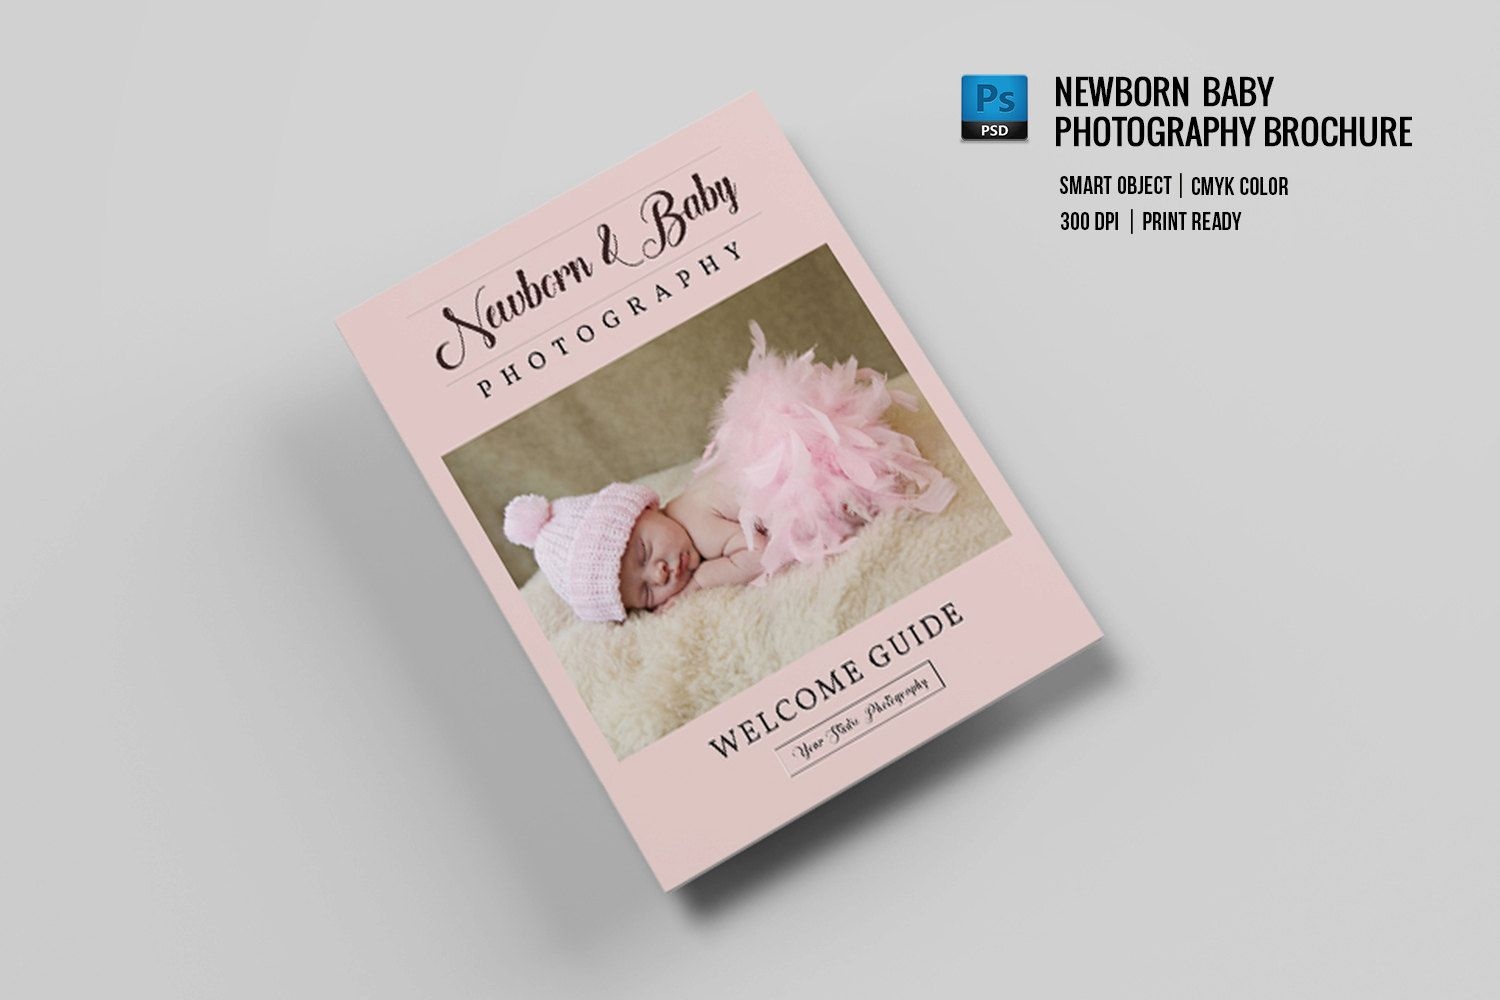 Newborn Photography Magazine Template  Promotional Brochure